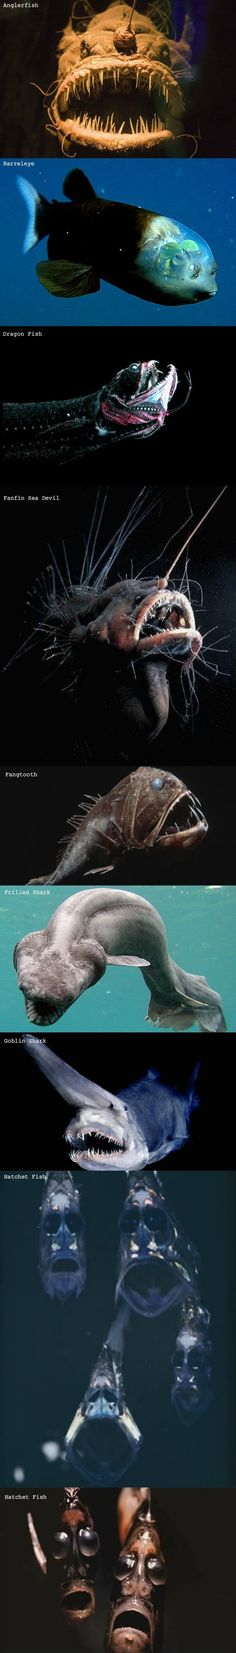 Creatures from Mariana Trench